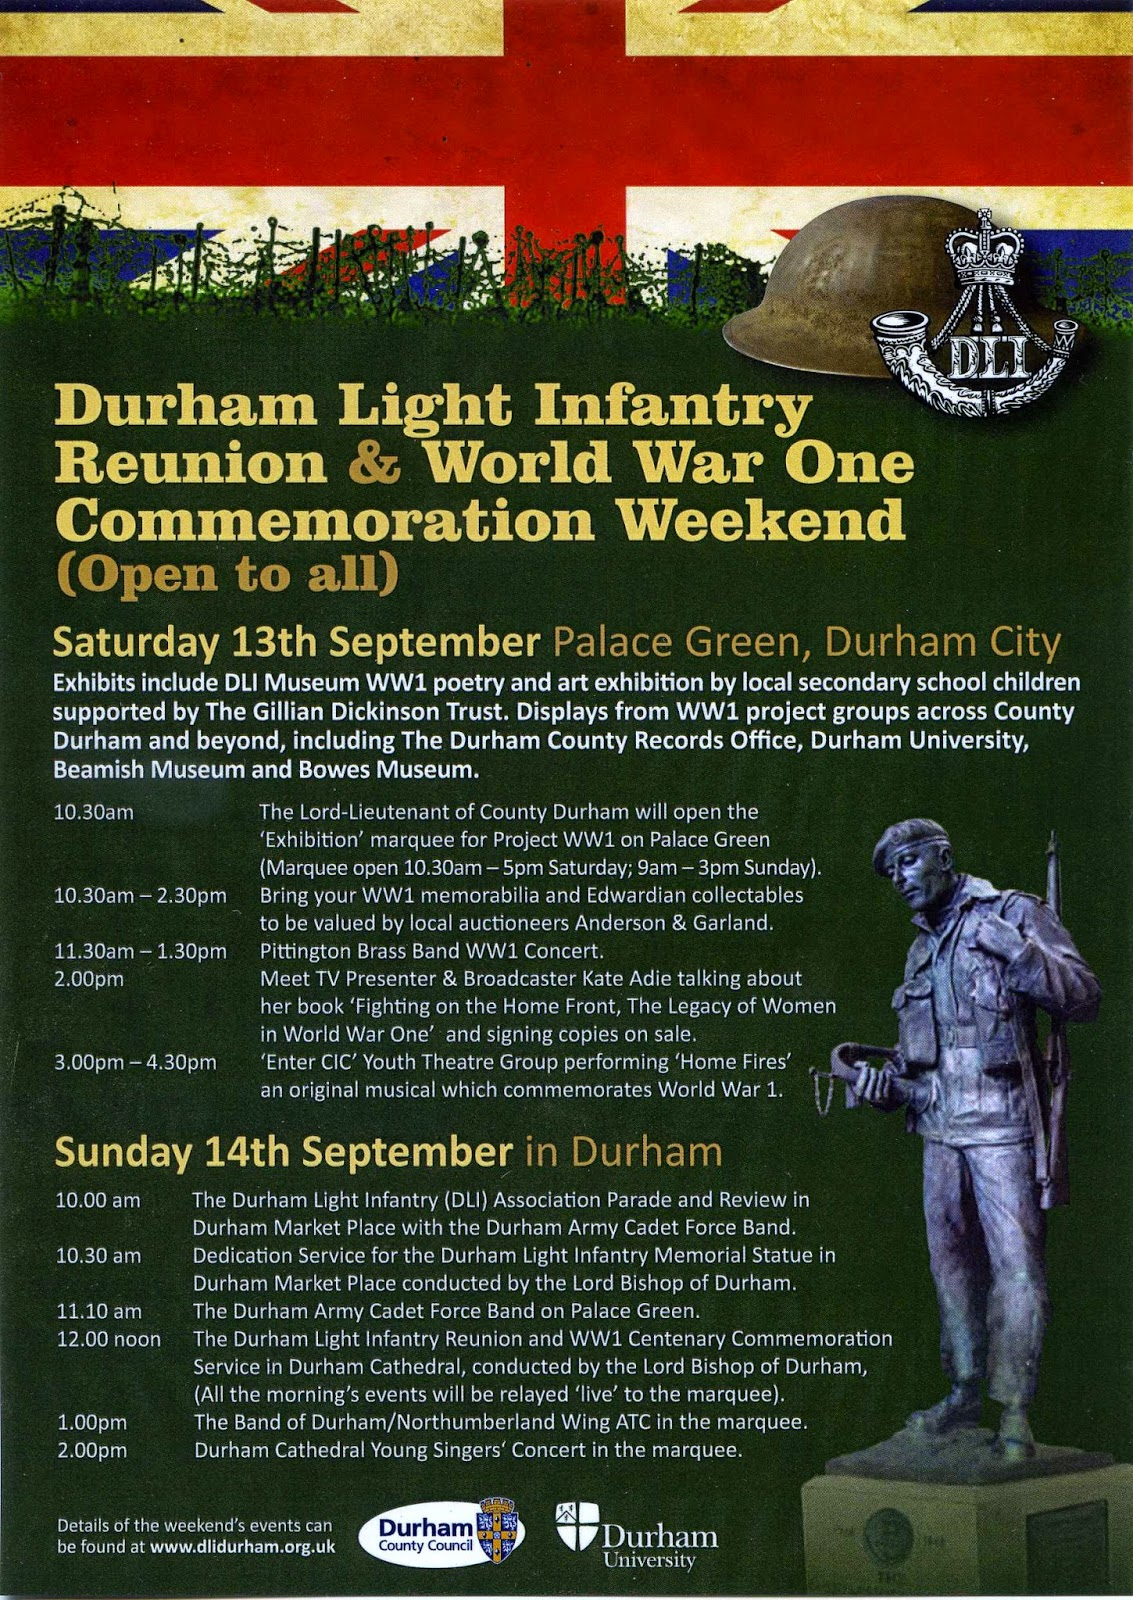 World war One Commemoration Weekend flyer